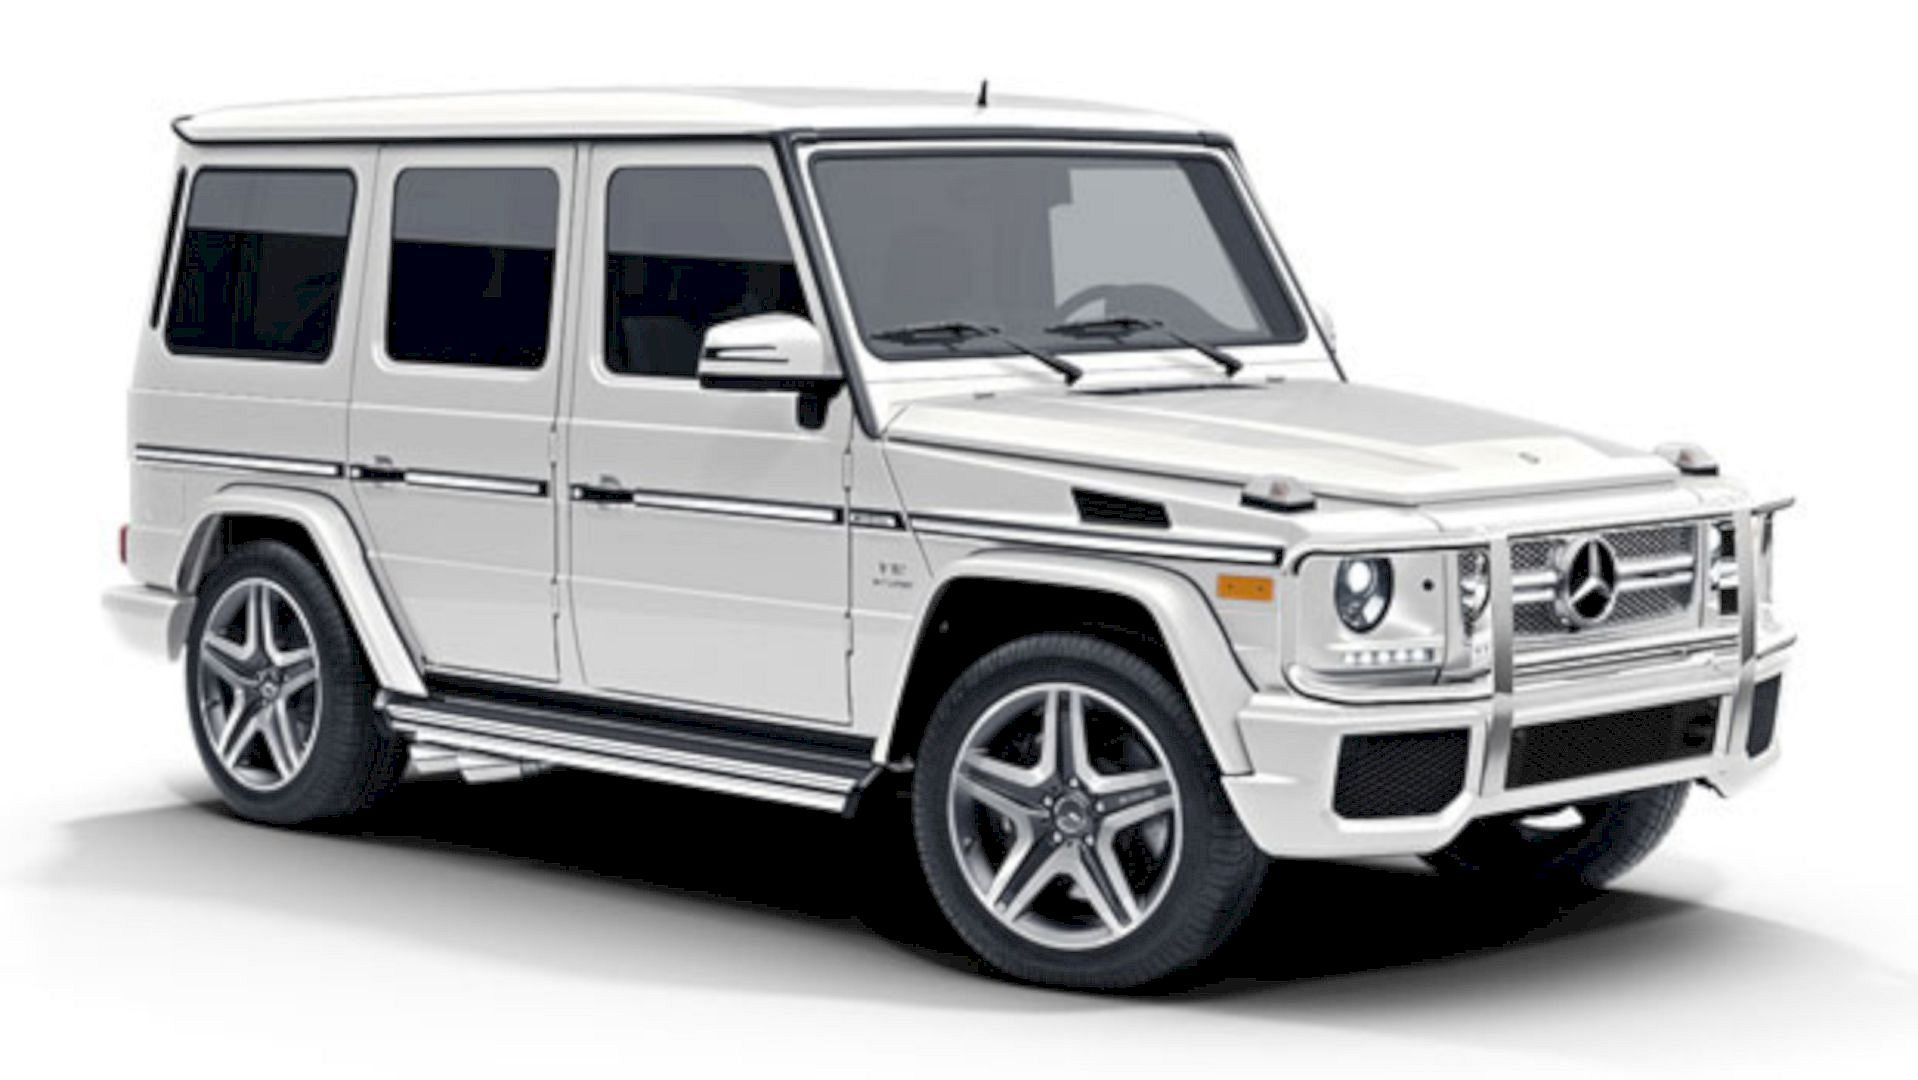 The Ultimate AMG G 65 SUV by Marcedes Benz Pinterest